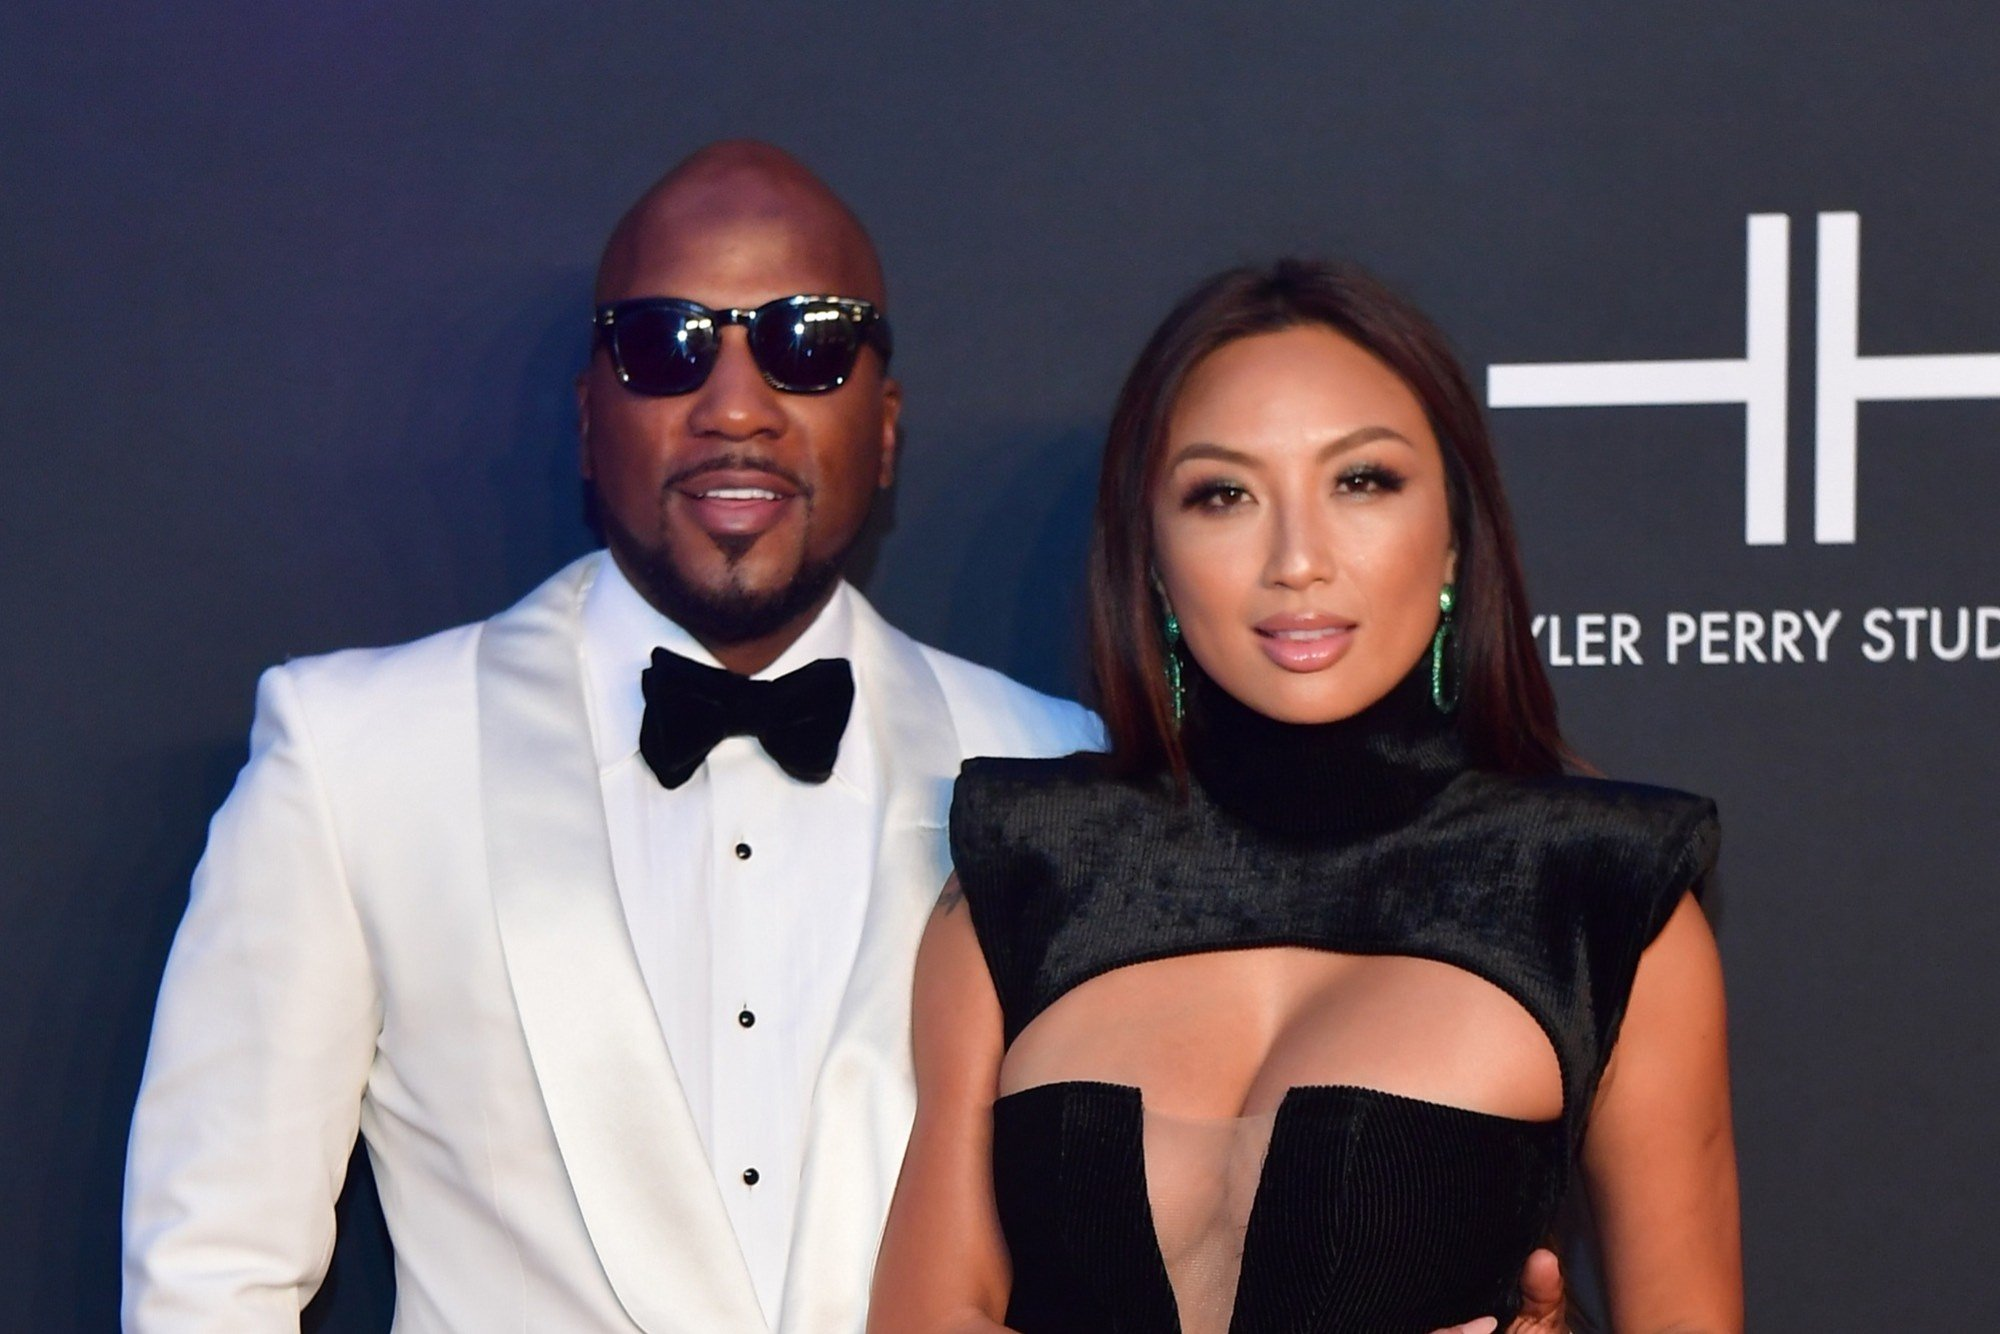 Jeannie Mai Is Tired Of Being The Boss, Wants To Be A Submissive Wife In Marriage With Jeezy